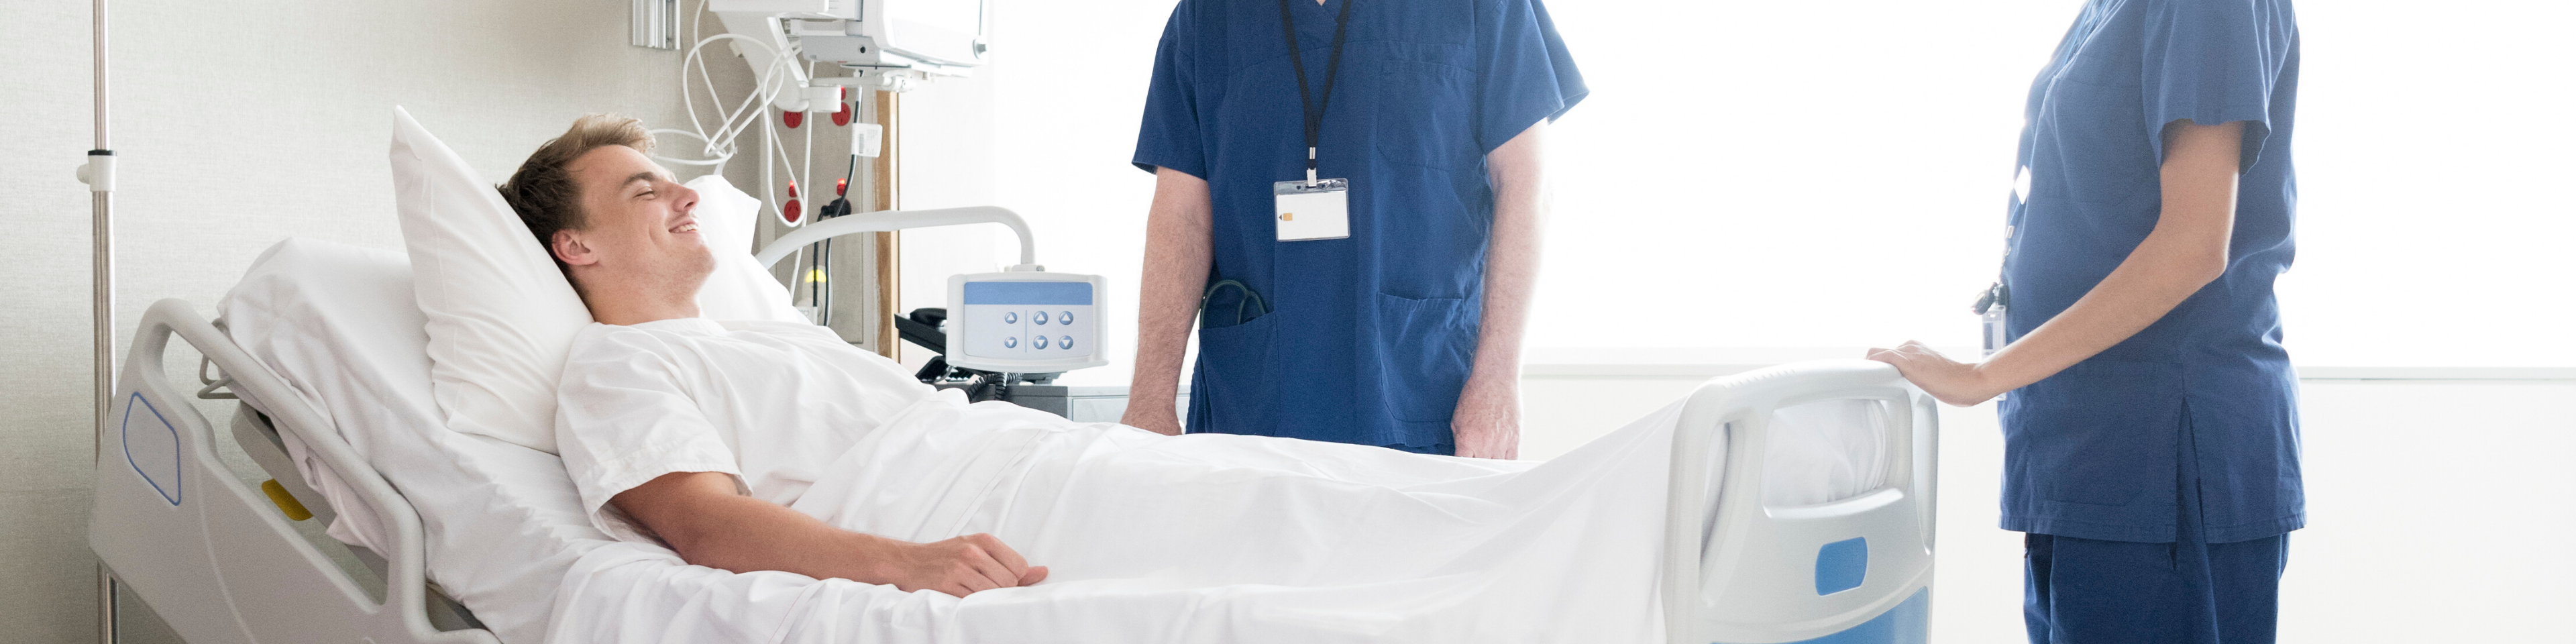 Delivering care according to the Sepsis Bundle improves hospitals' performance